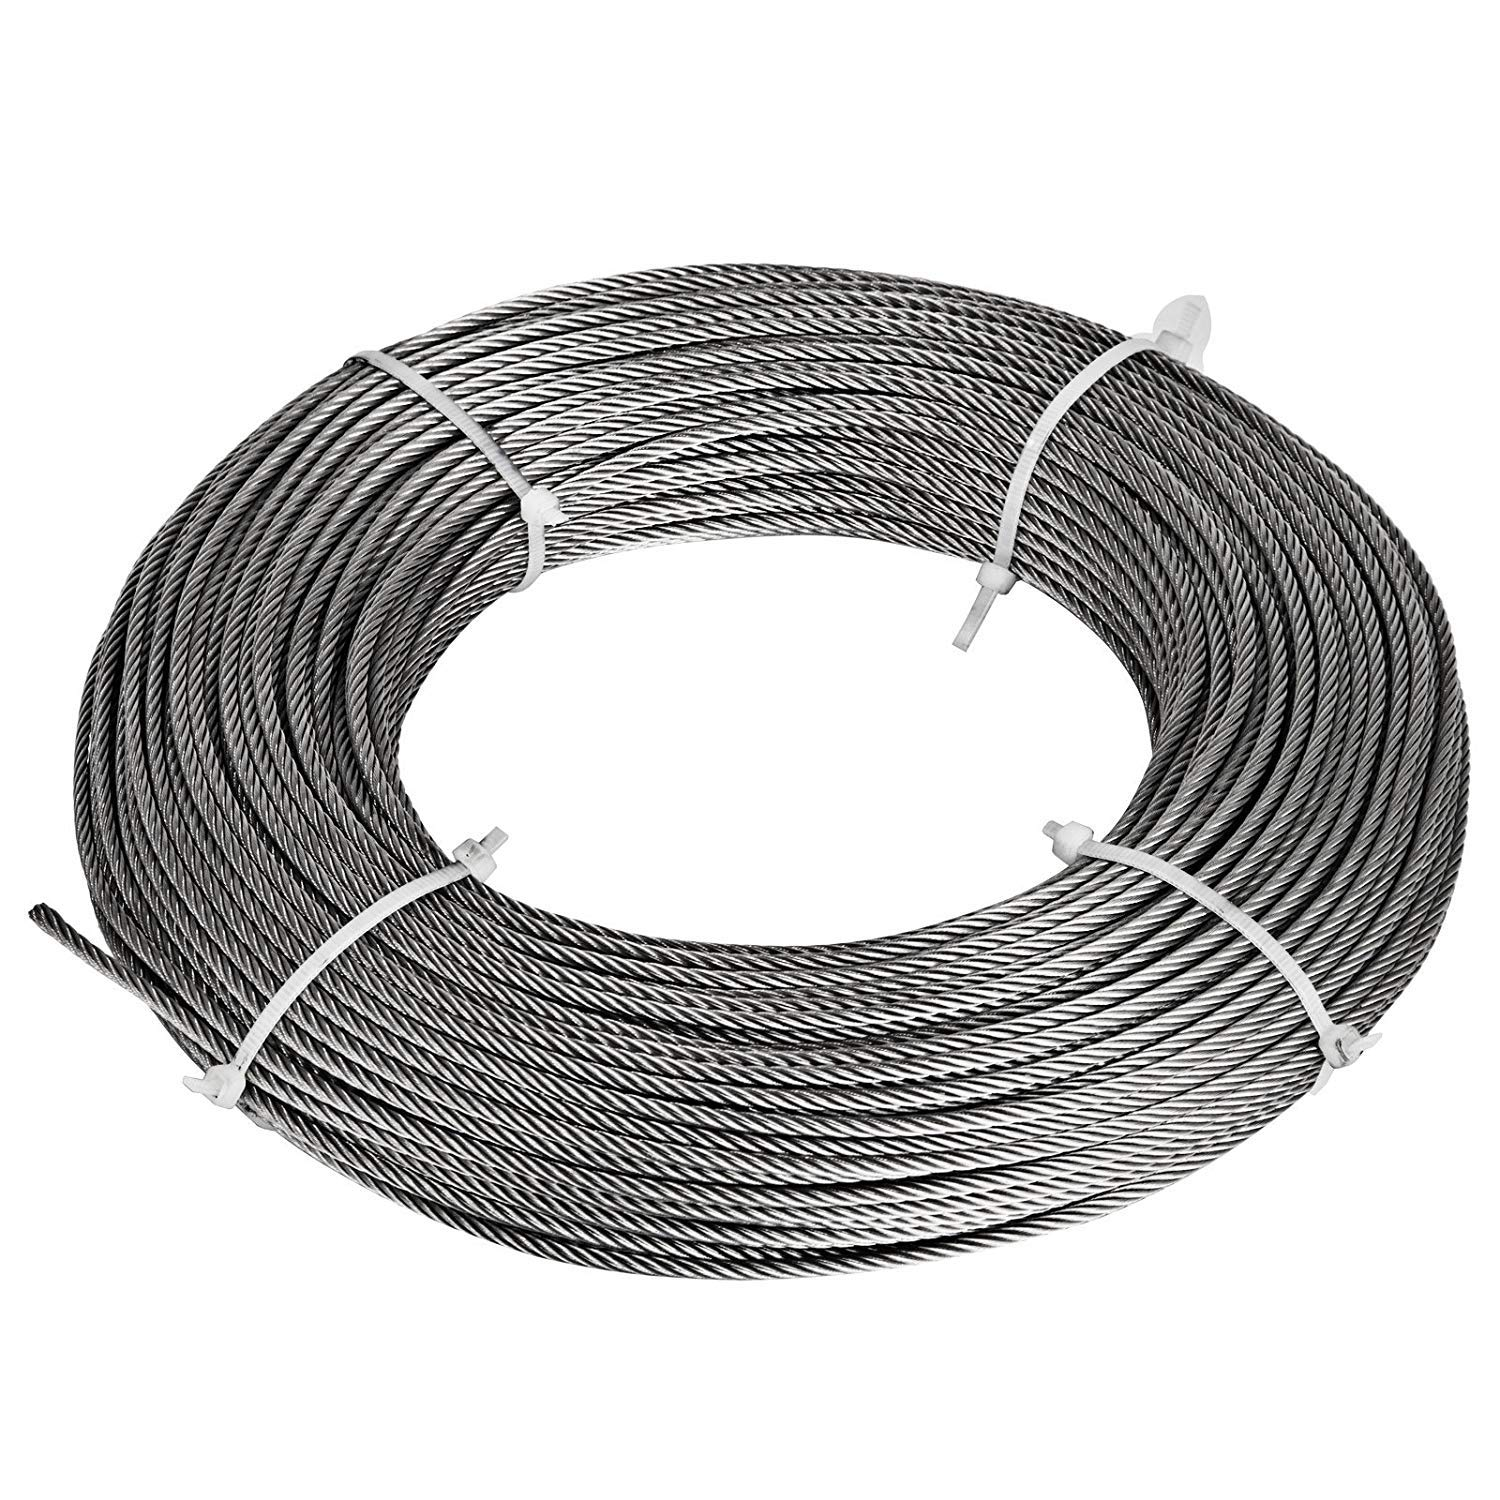 Happybuy 1//8 Inch T304 Stainless Steel Cable 7x7 Strand Winch Rope Aircraft Steel Cable Stainless Steel Wire Rope Cable 1000 Foot